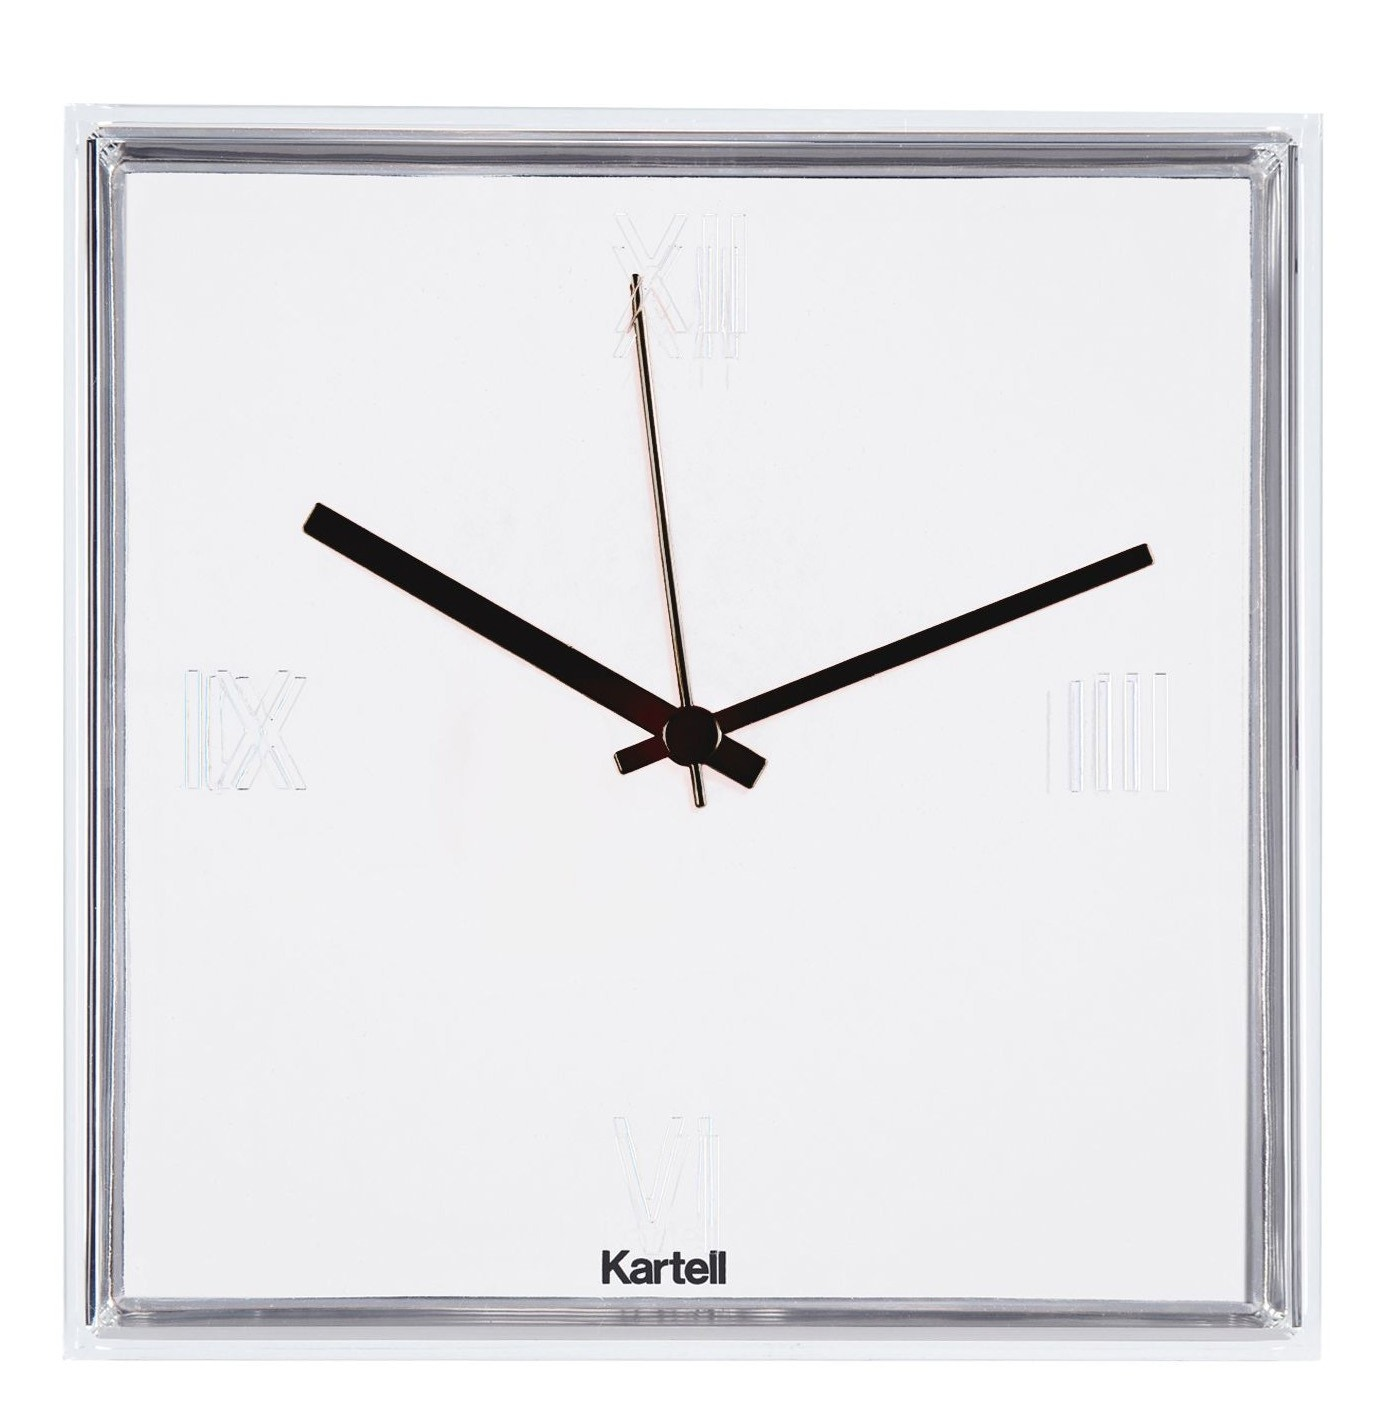 Kartell Tic & Tac Wall Clock (Priced Each, Sold in Sets of 4)